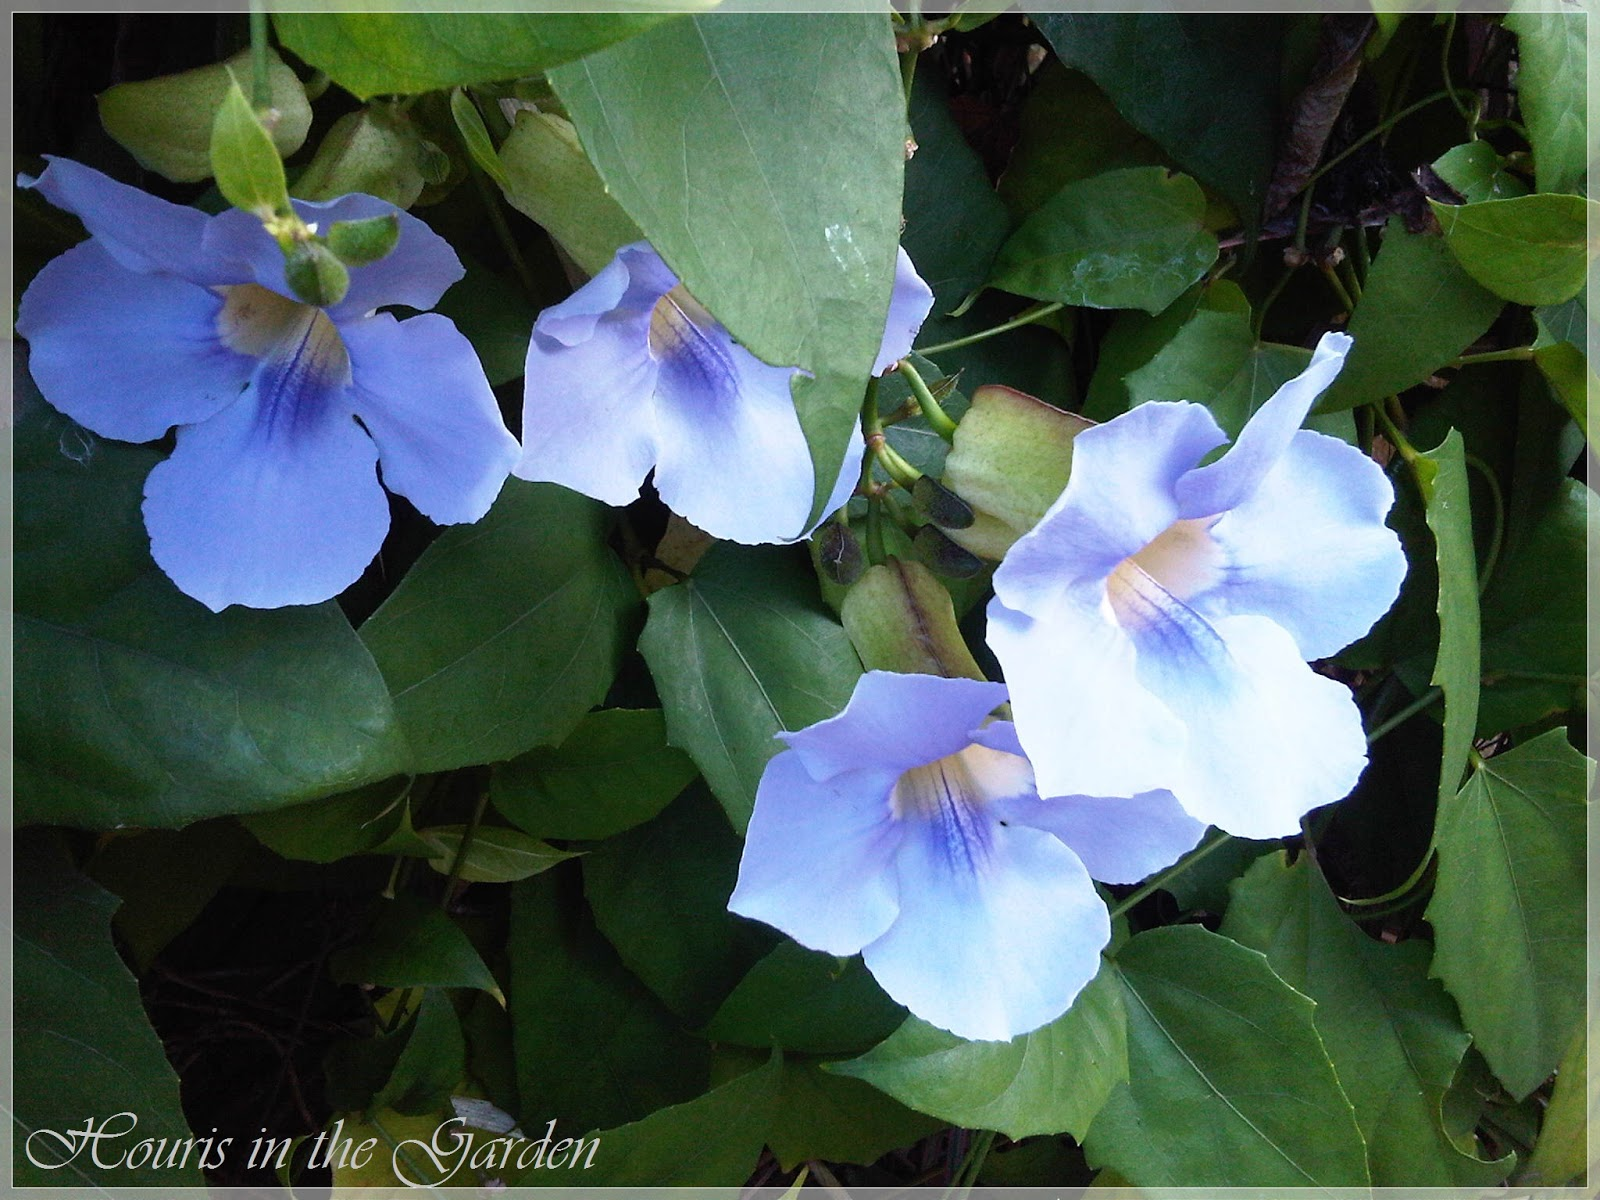 Houris in the garden thunbergia sky vine commonly known as blue sky vine it is scientifically named thunbergia grandiflora this vines are natives of south africa india and asia izmirmasajfo